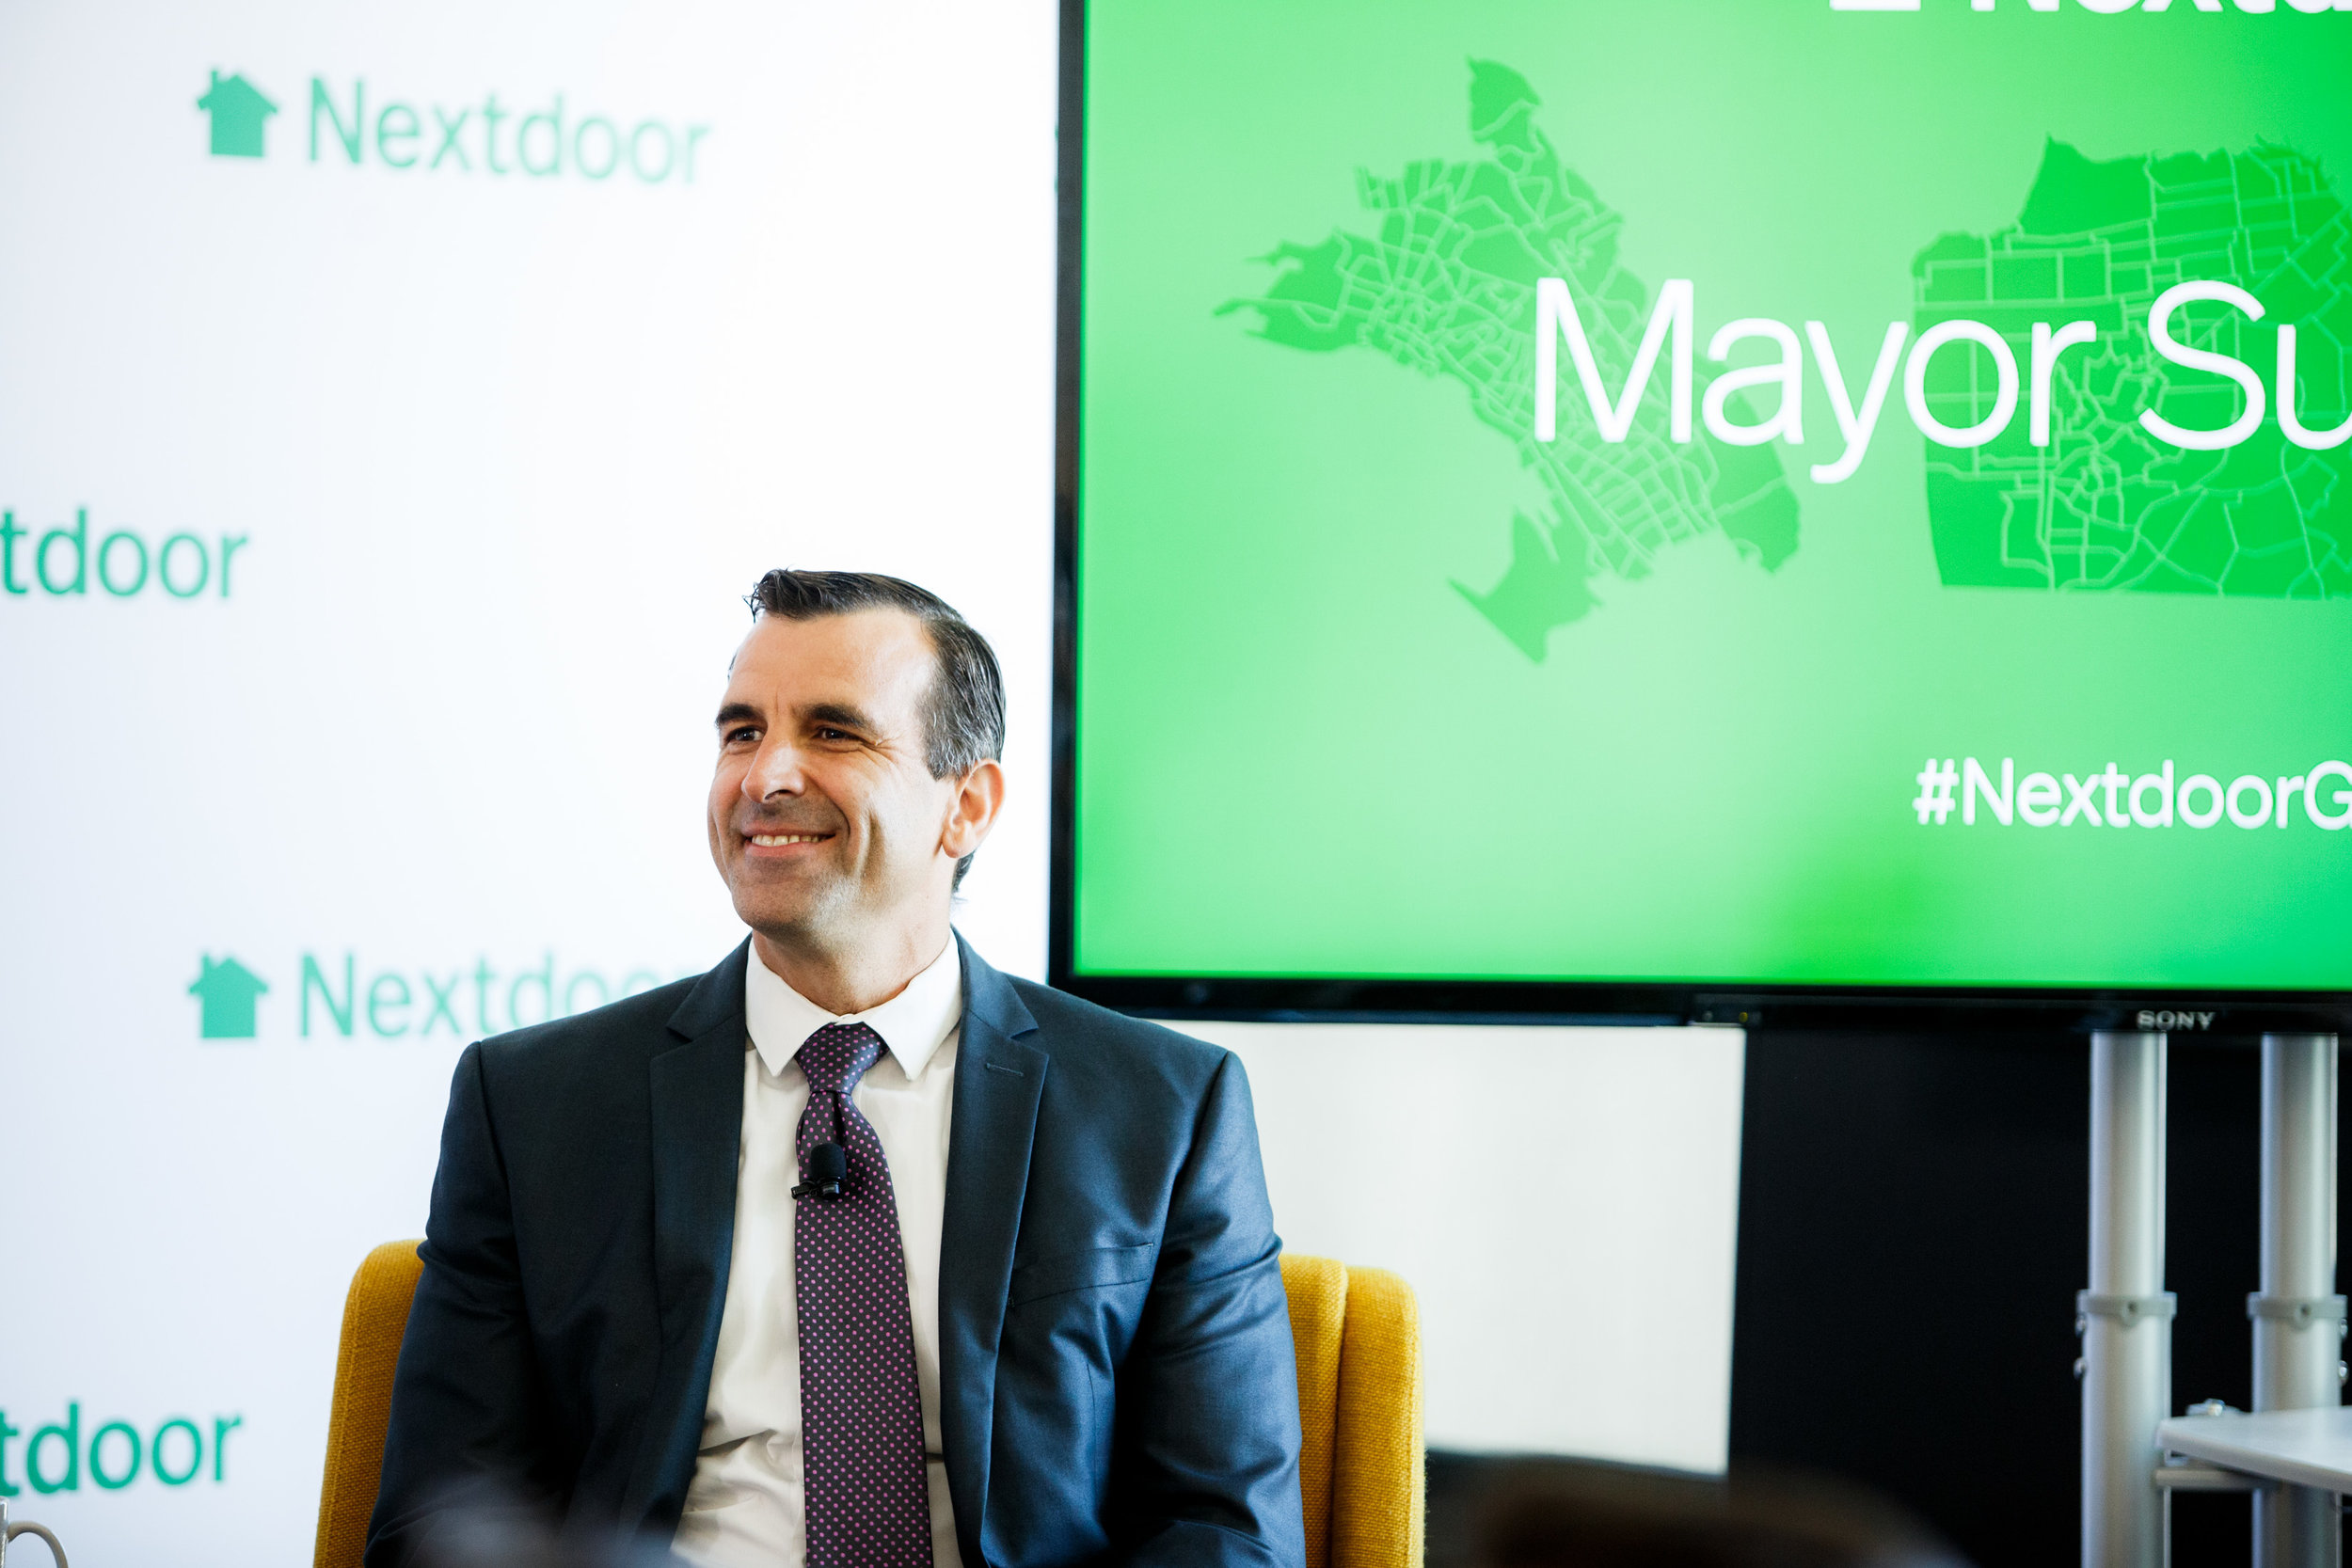 Nextdoor_MayorSummit_8-1-18-1-12.jpg